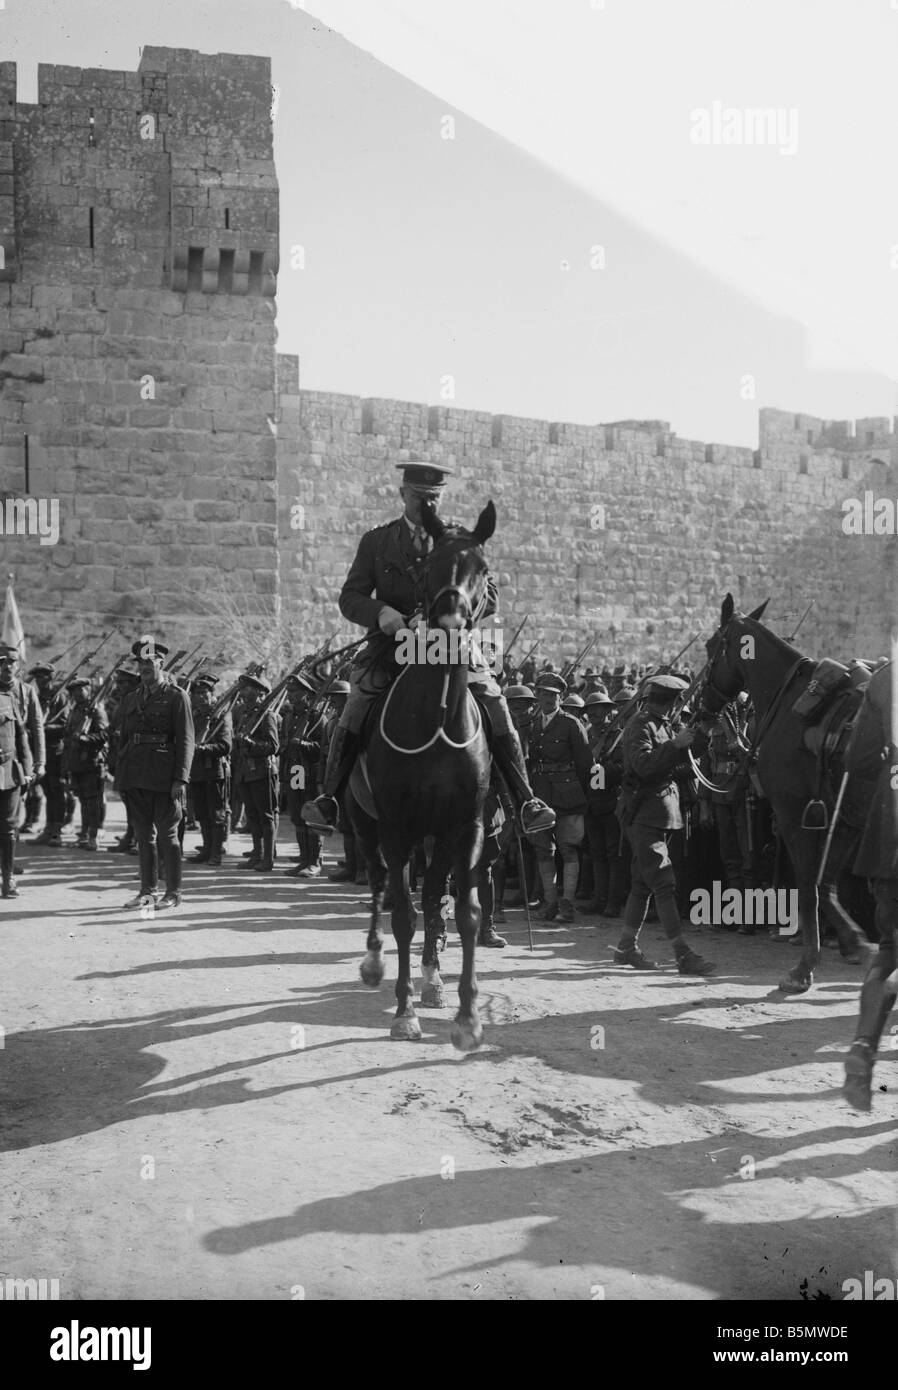 9IS 1917 12 11 A1 WW I Capture of Jerusalem by Britain World War I Turkish British fights Capture of Jerusalem by - Stock Image